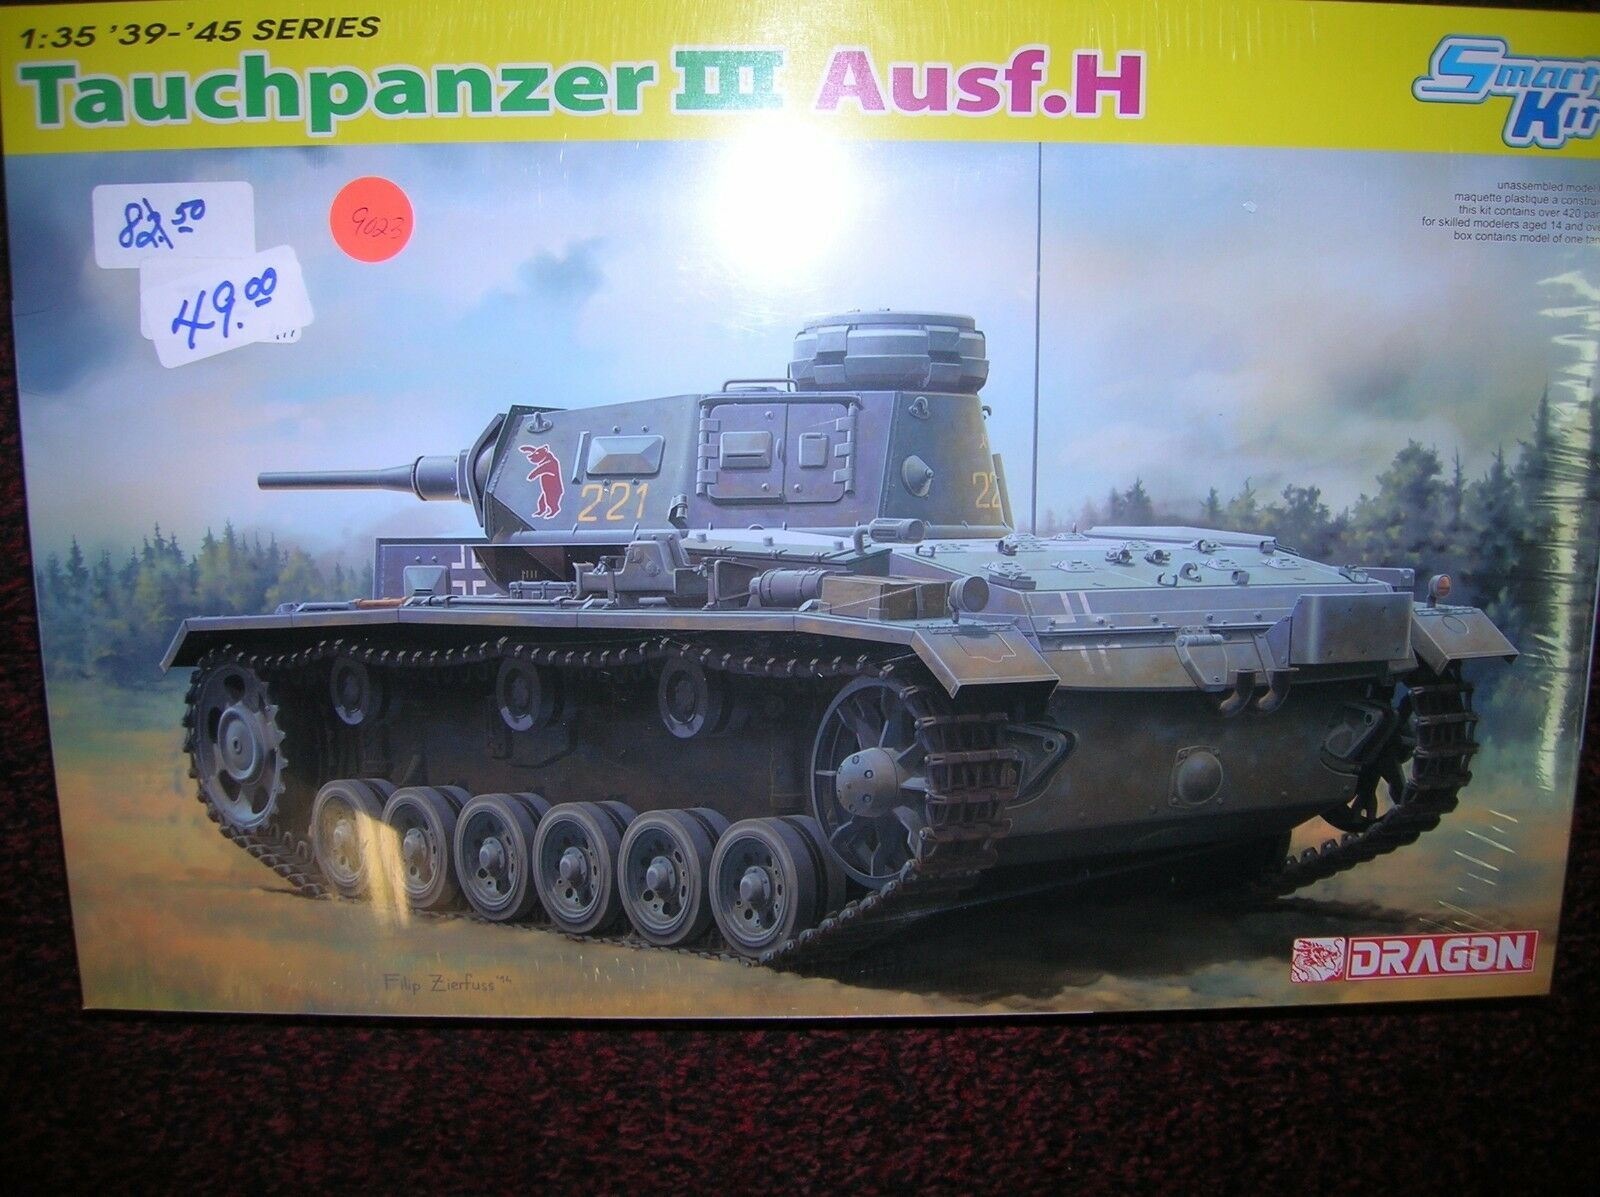 Italeri   Tauchpanzer III Ausf.H 1 35 new boxed list  82.50  lot